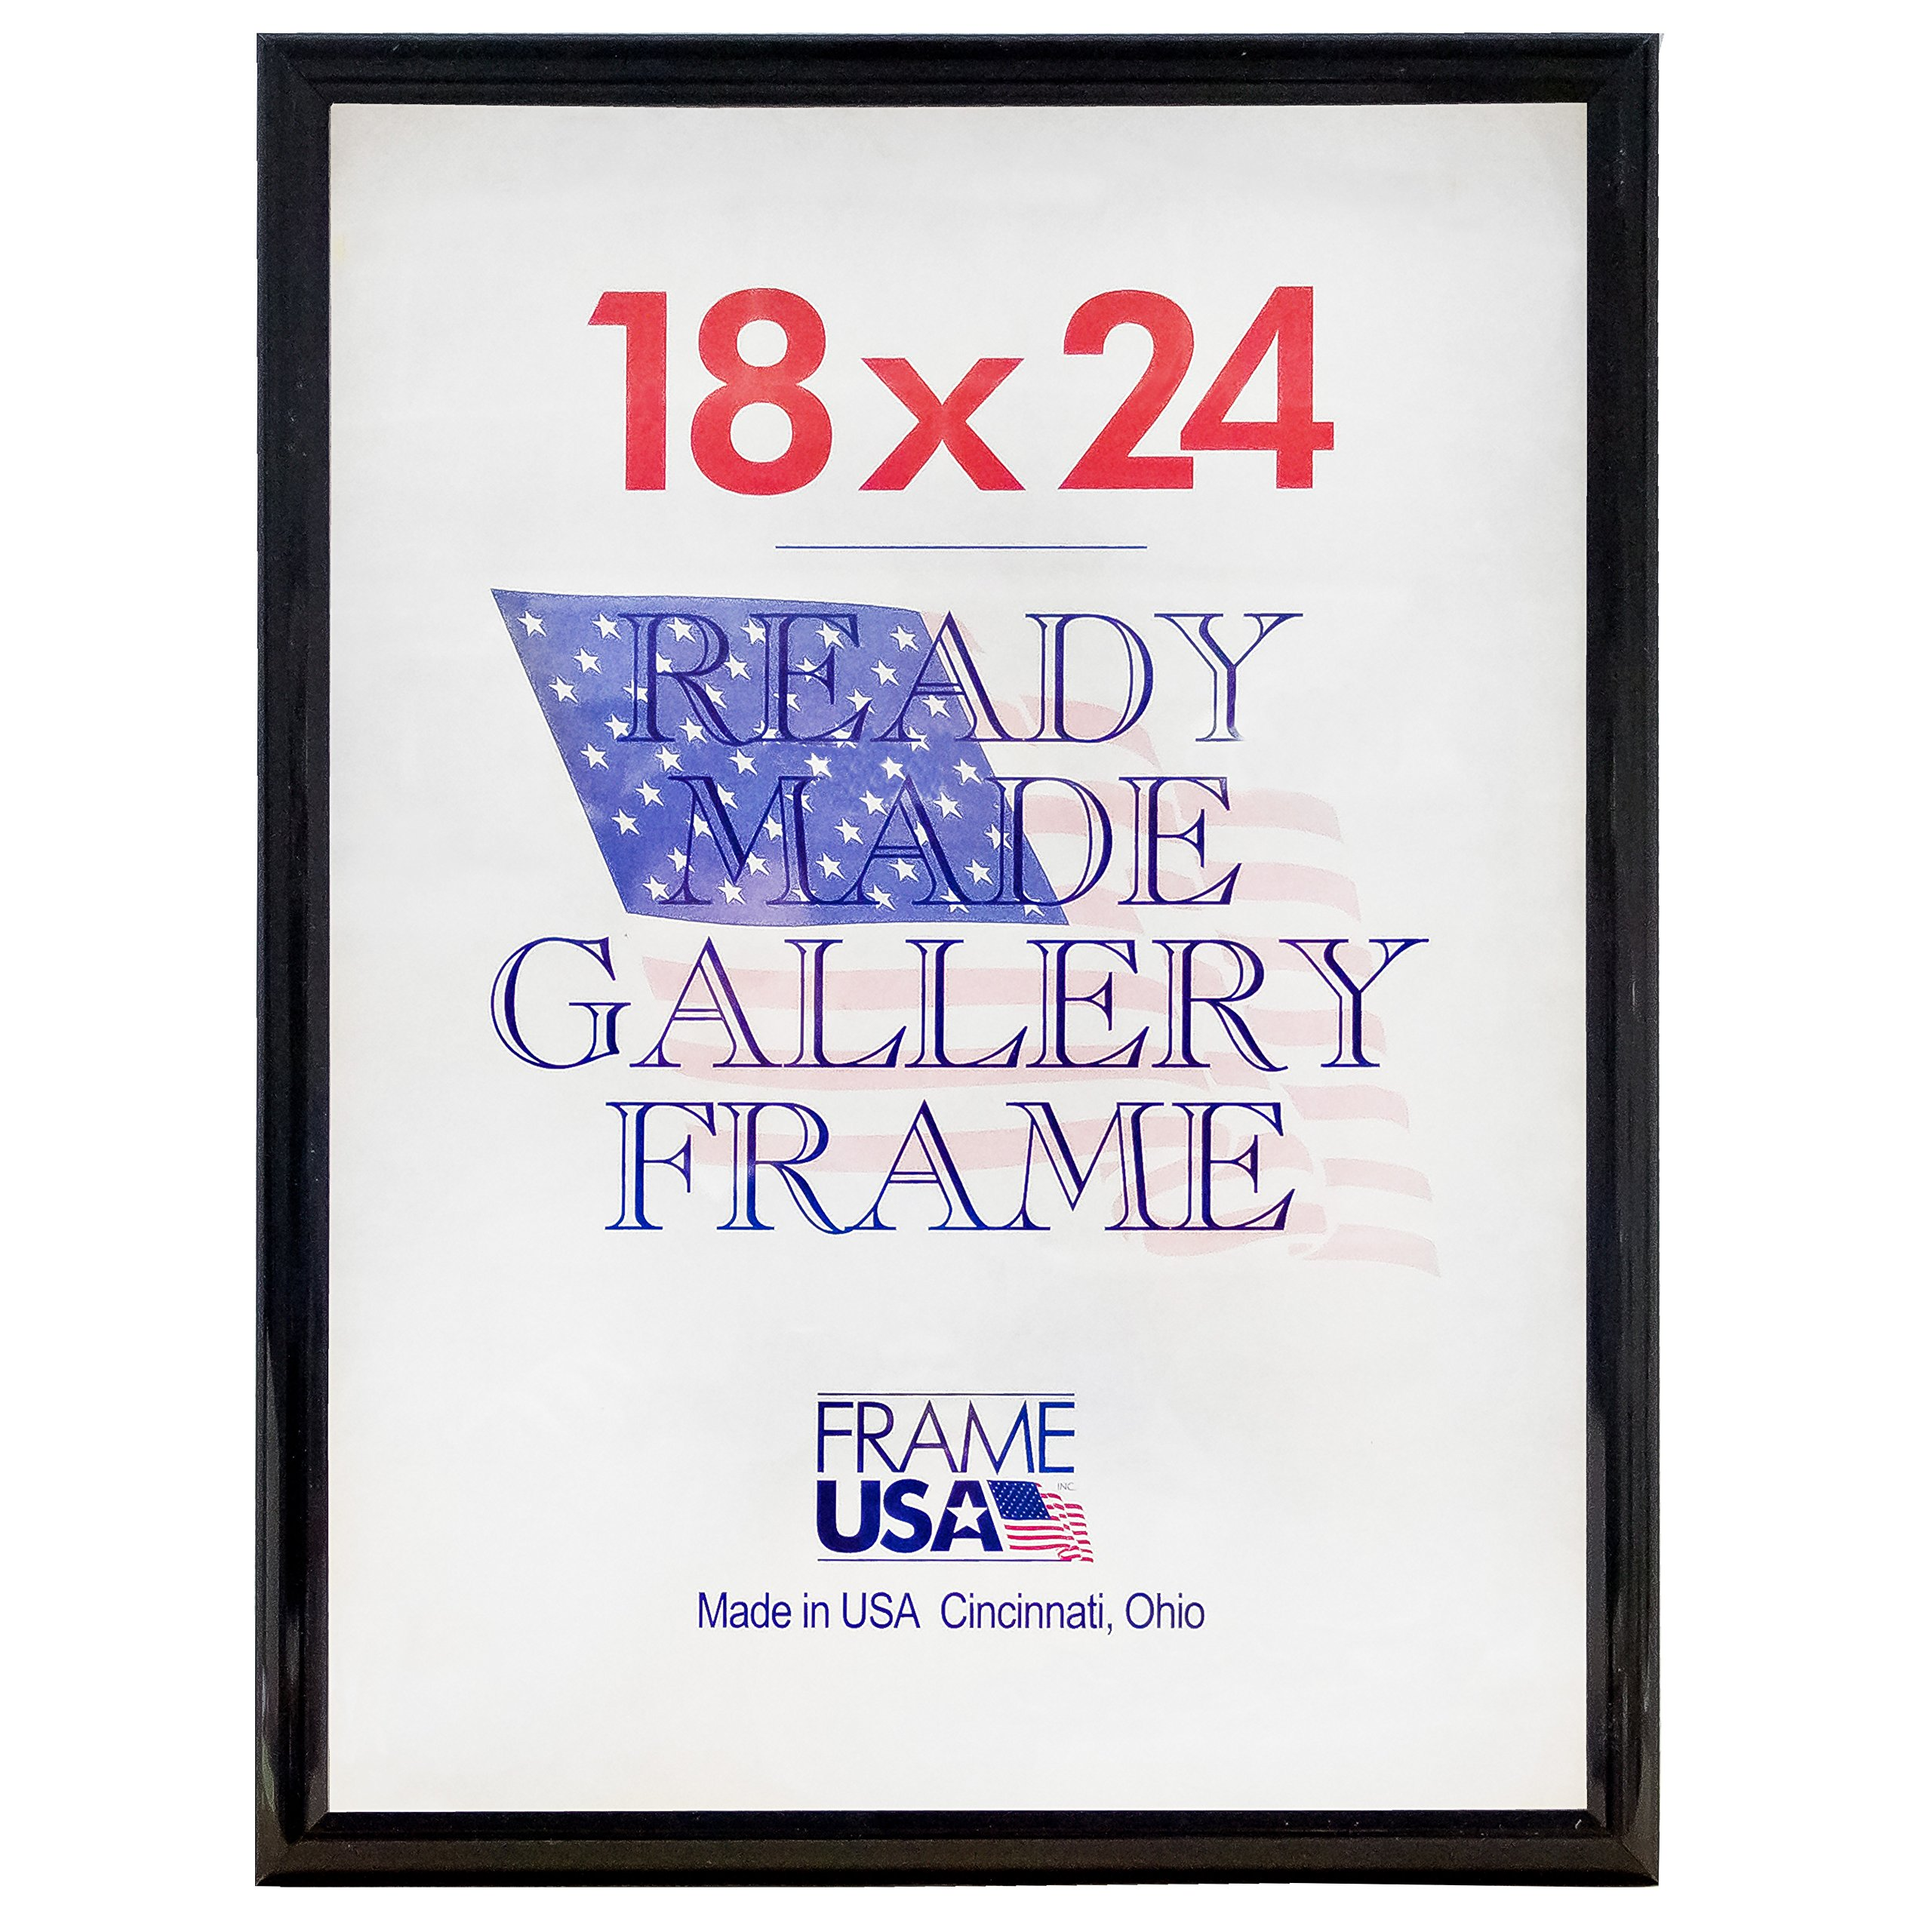 Deluxe Posterframe Frames, 18 x 24'', Black by Frame USA